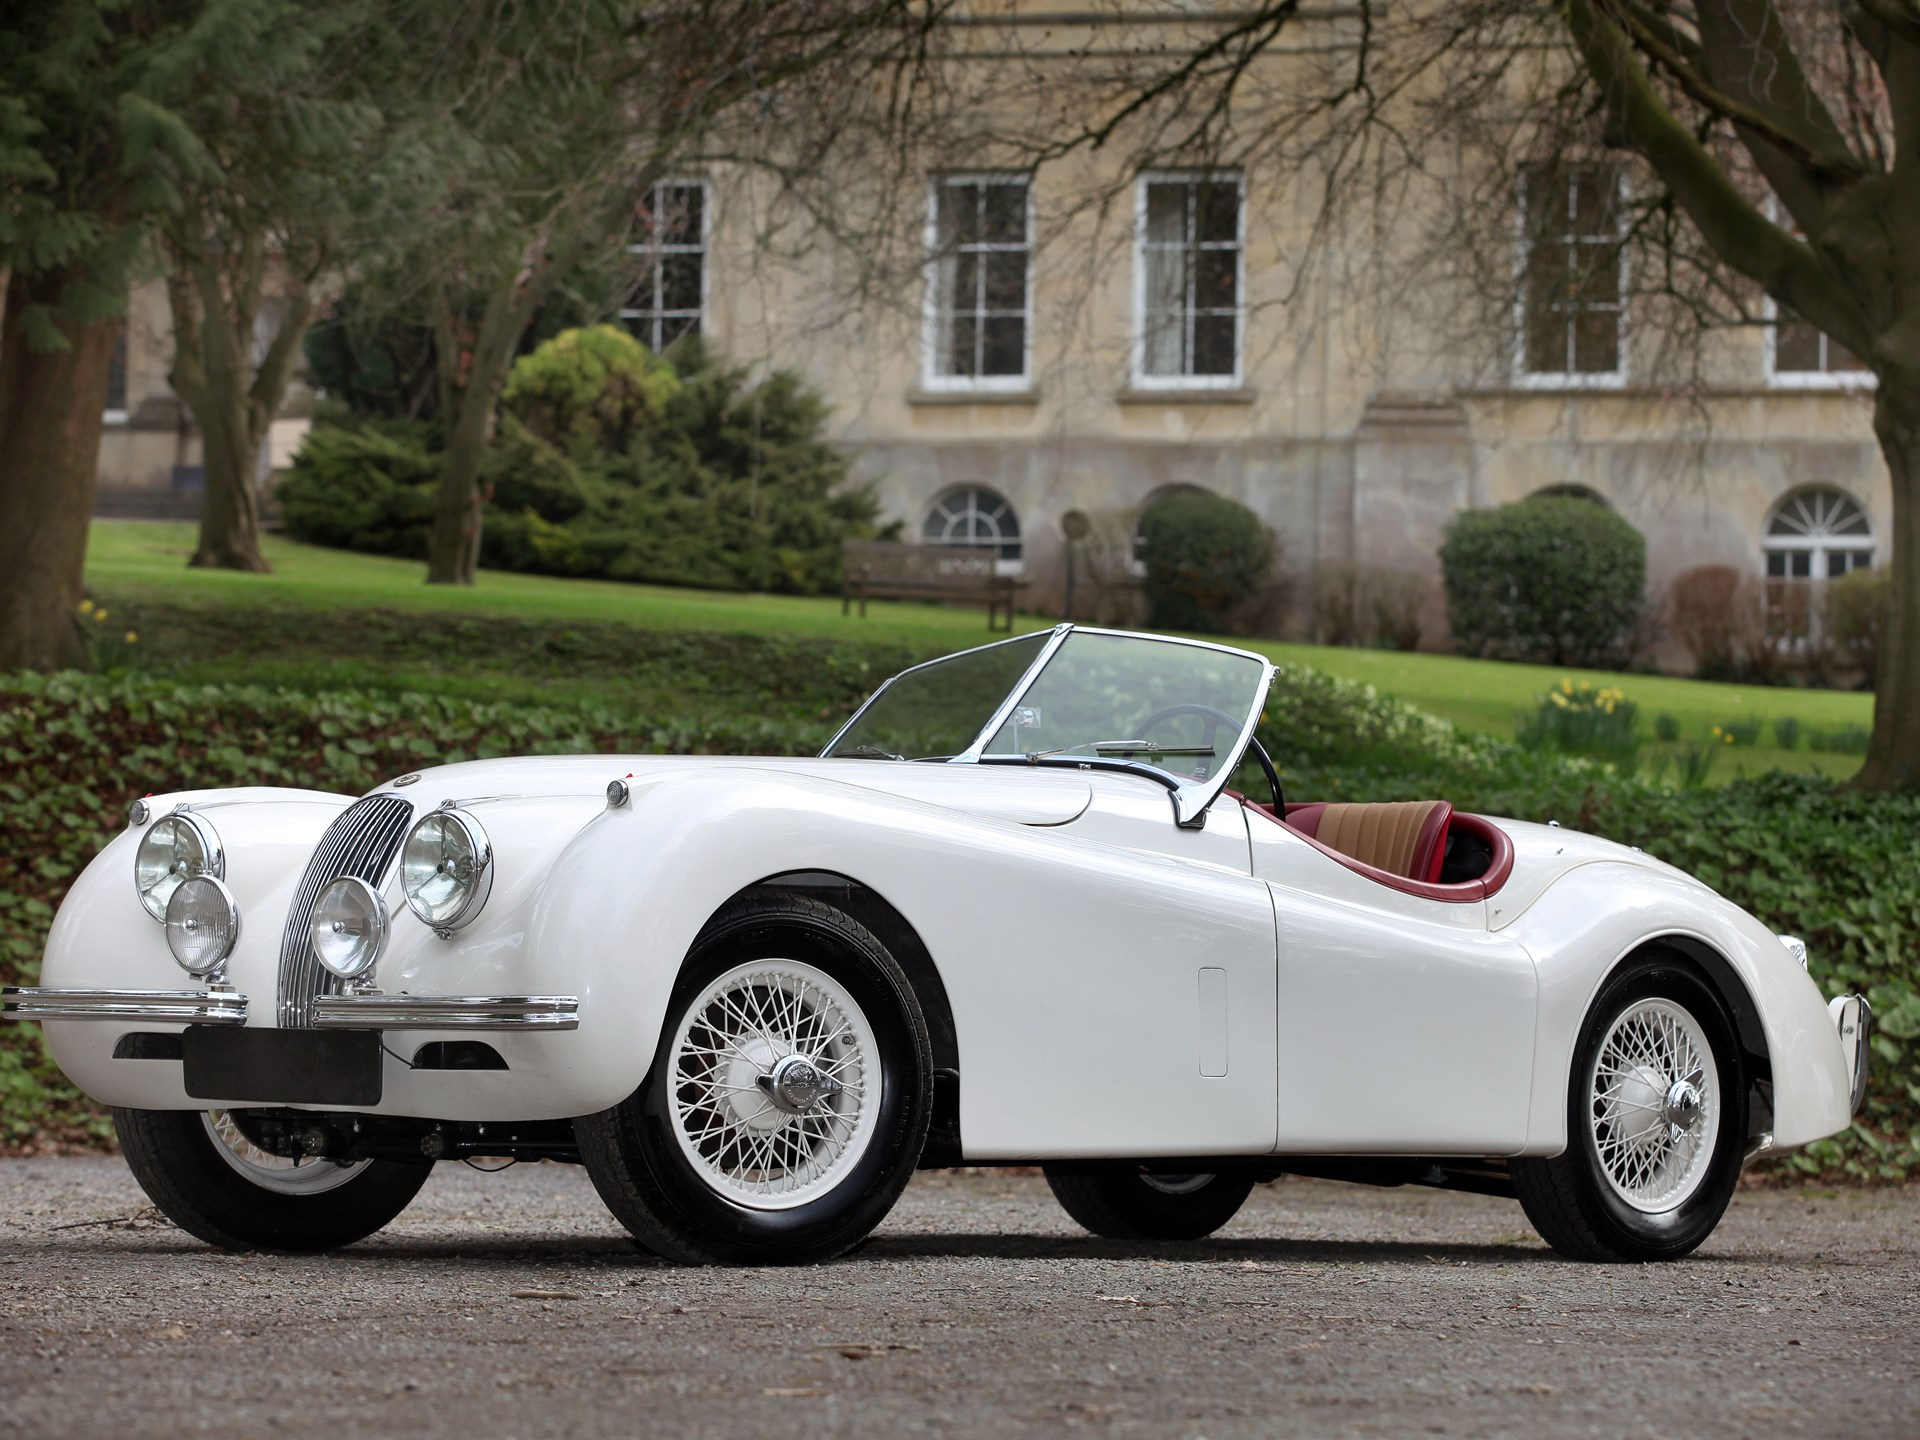 1953 Jaguar XK120 Roadster